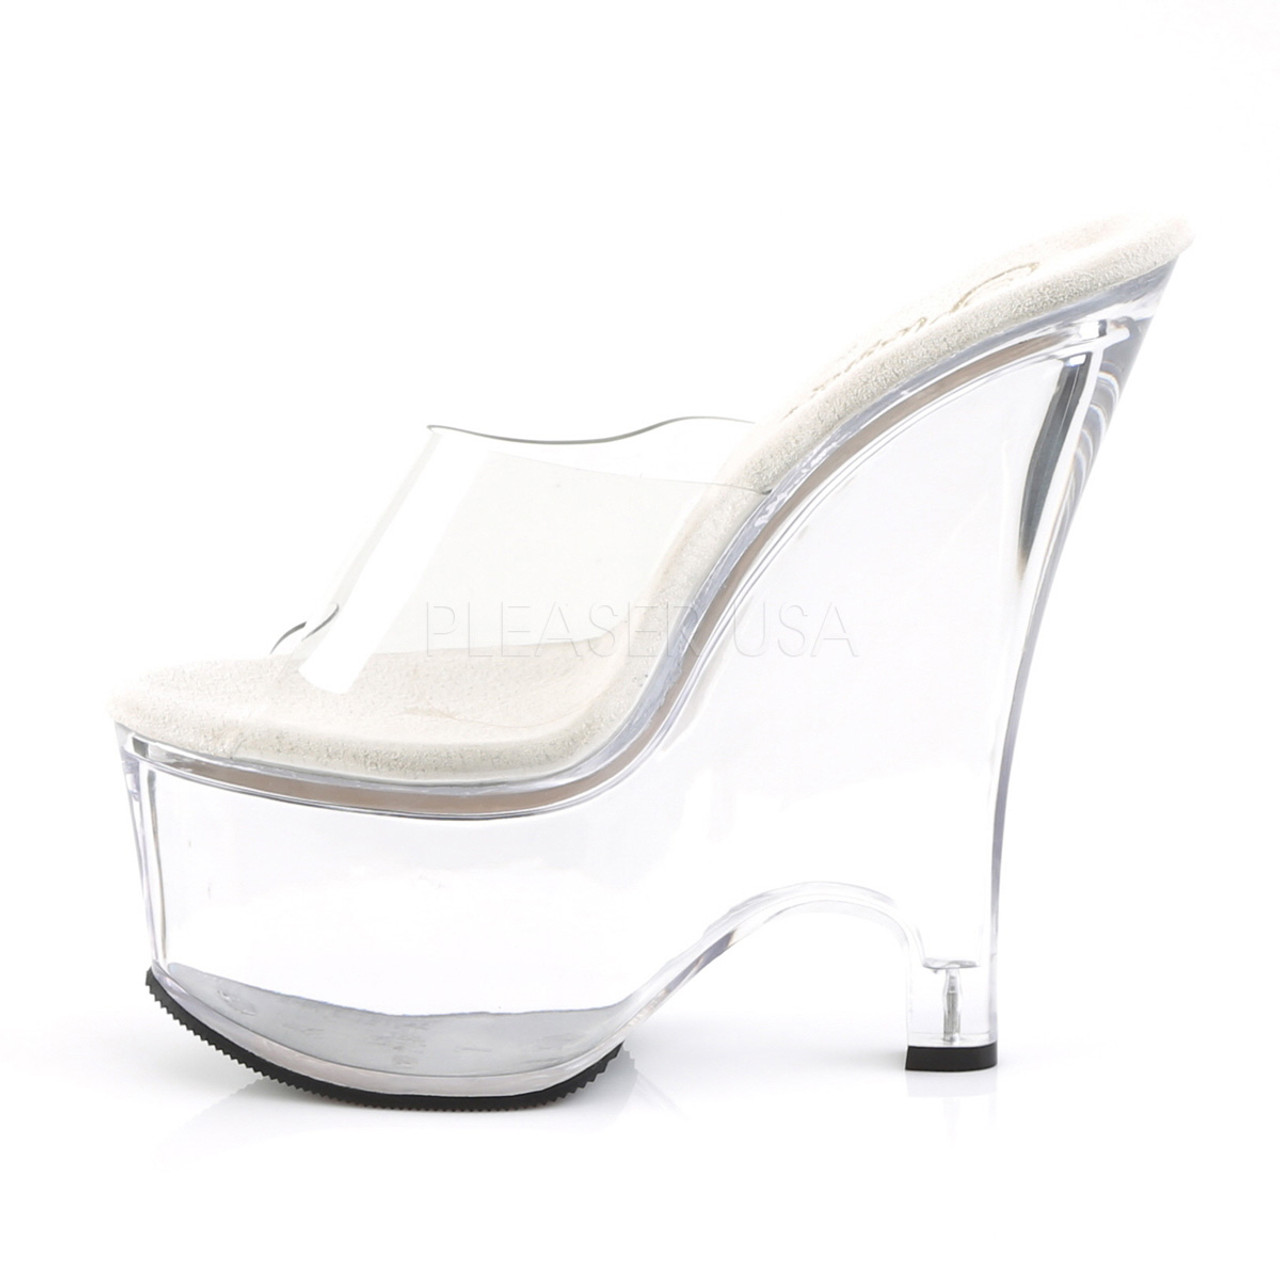 """Pleaser Shoes - Women's sexy clear 6.5 inch heel stripper pumps with 2.8"""" platform."""